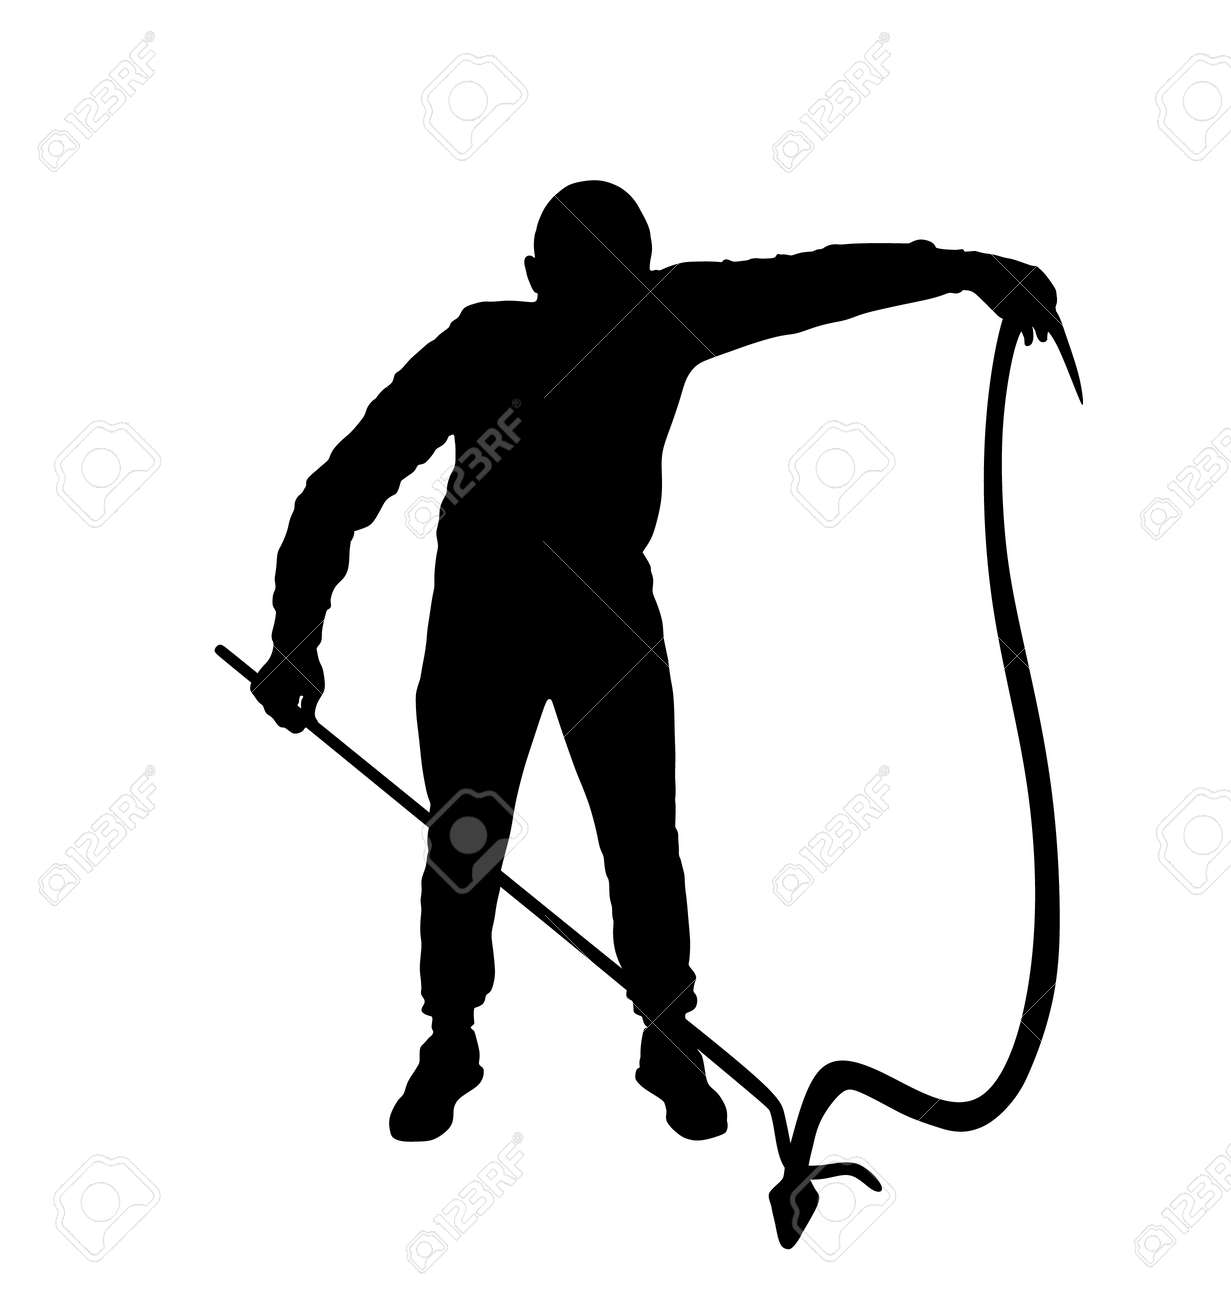 Brave man catching snake with stick vector silhouette illustration isolated on white background. Poison snake control. Deadly venom snake serpent catch for medicine pharmacy. Removal danger intruder. - 172748879